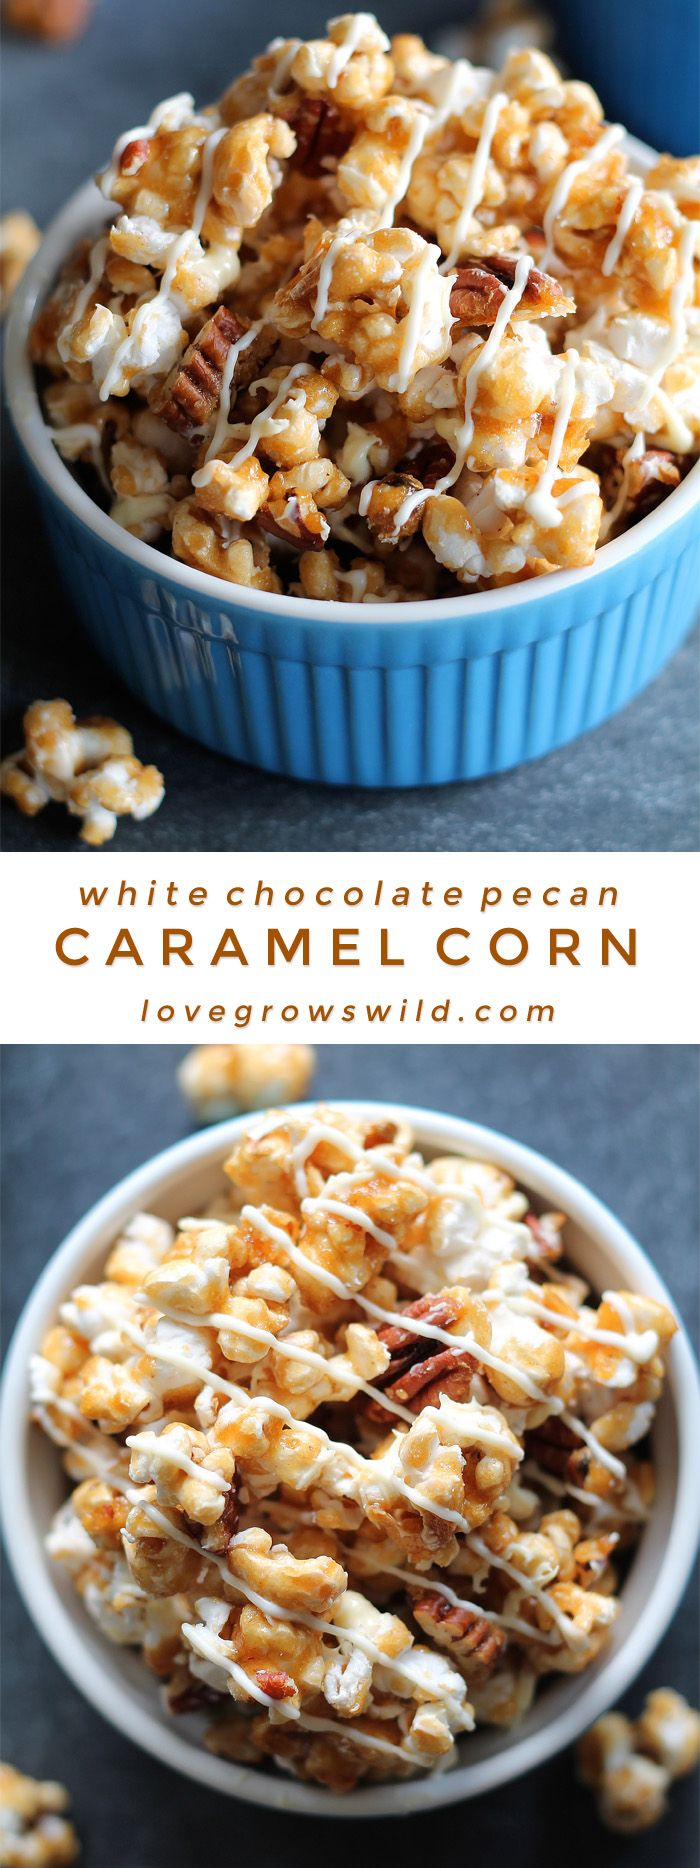 ... Caramel, Learning, How To, Chocolate Caramels, Caramel Corn, Drizzle